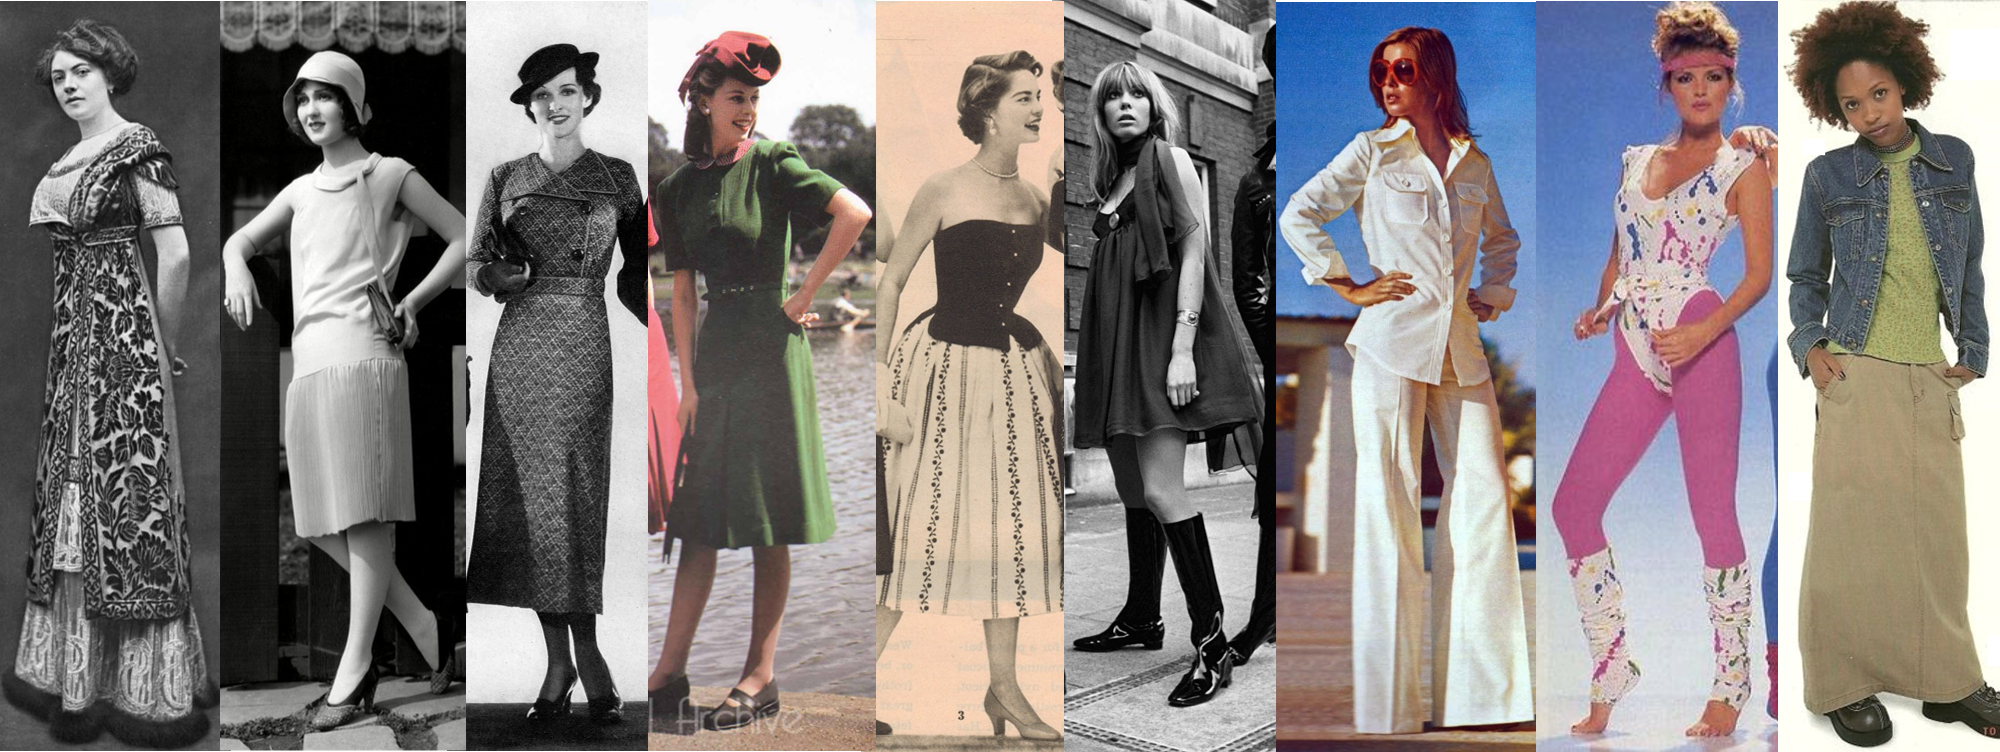 CANCELED - Women's History: Fashion in the 20th Century